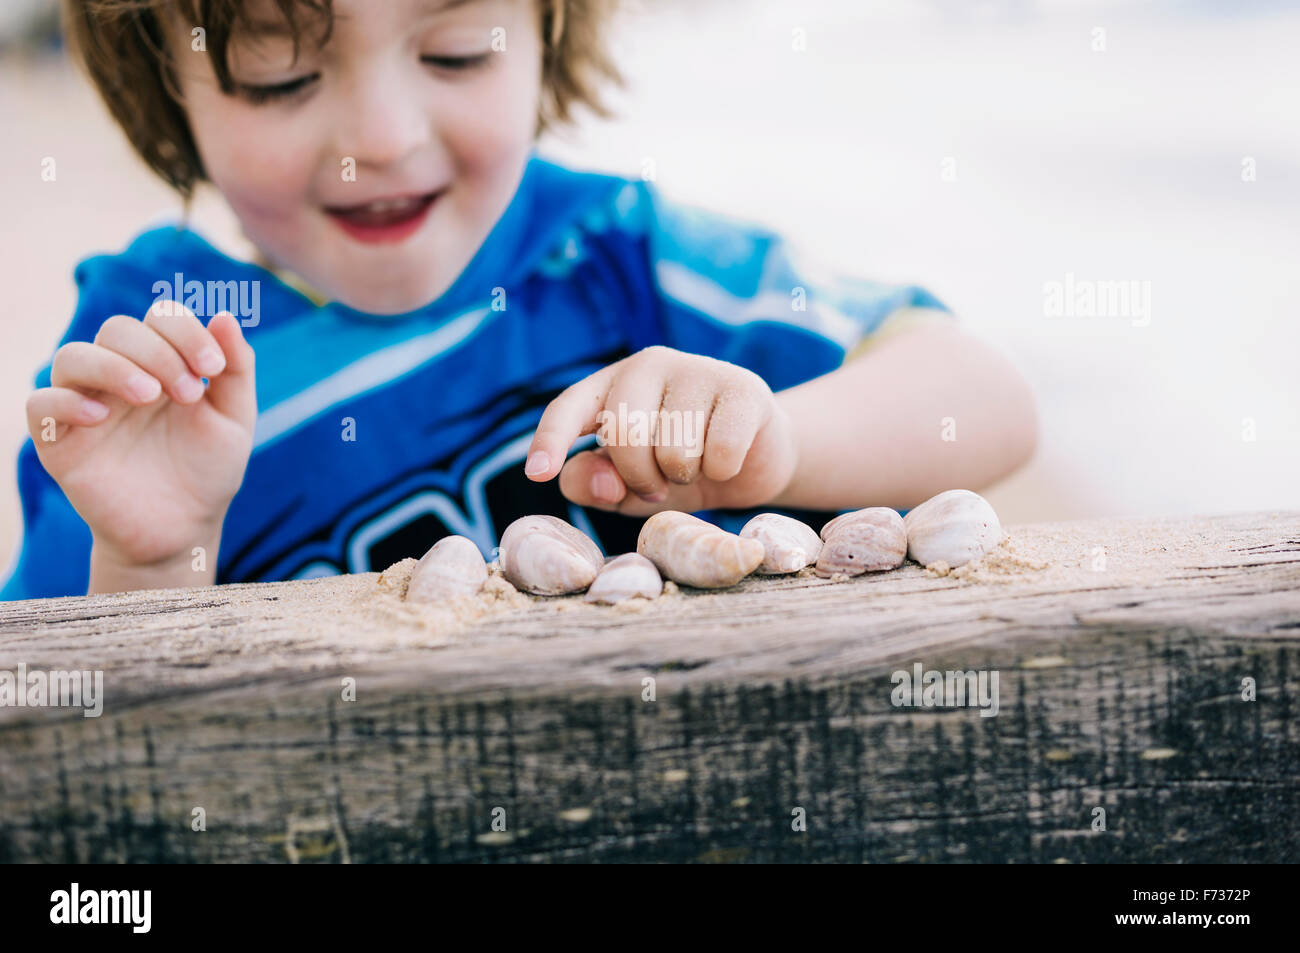 A boy at the beach counting shells lined up on a breakwater. - Stock Image